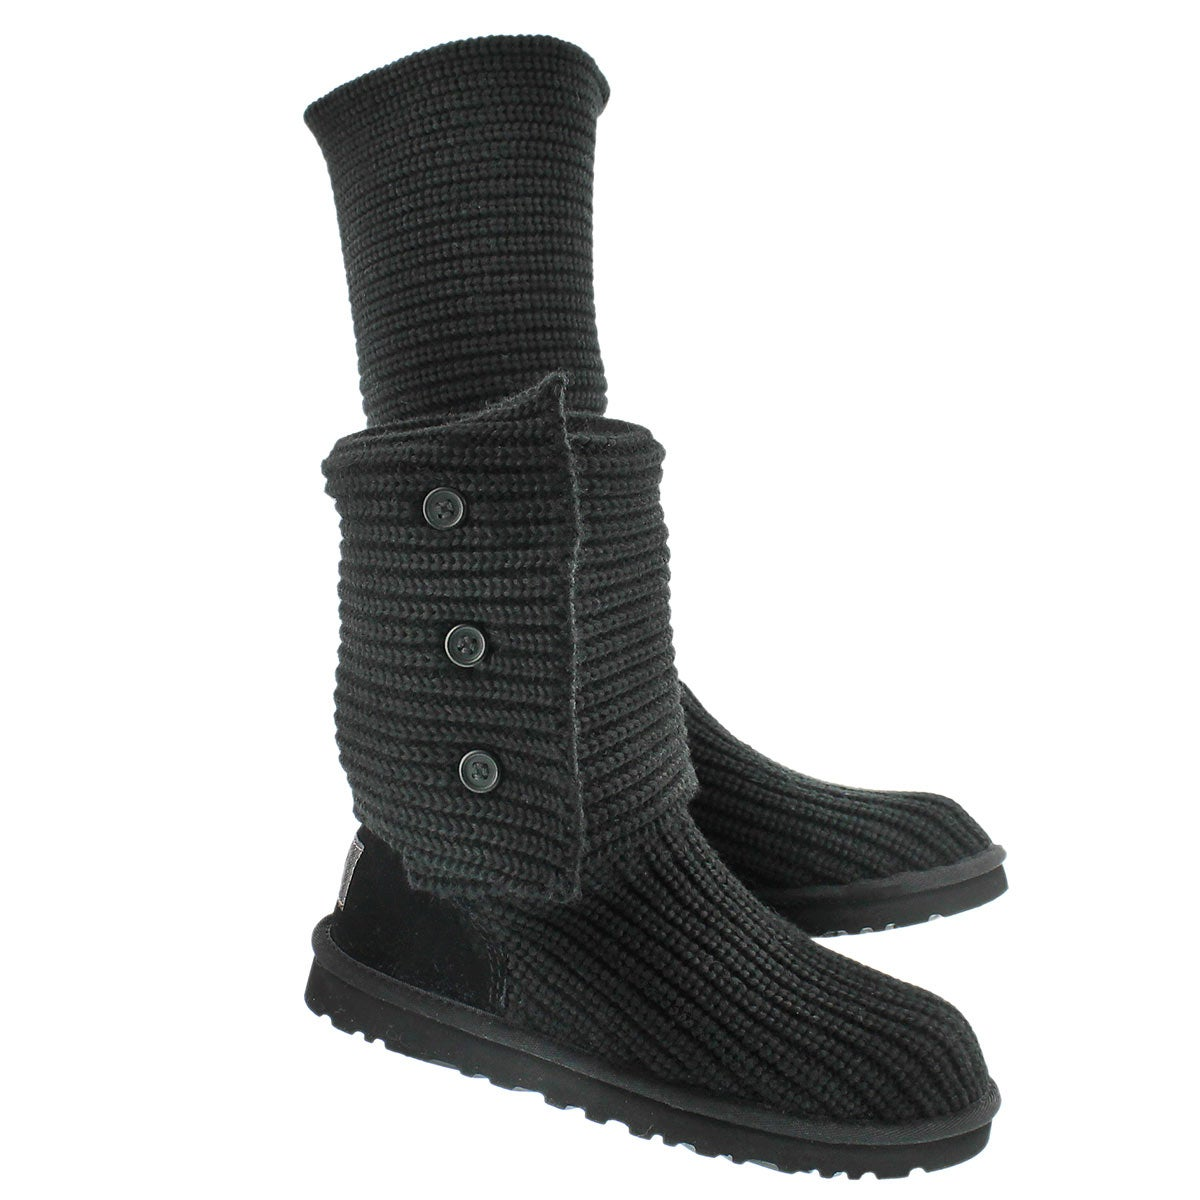 Lds Classic Cardy black knit button boot